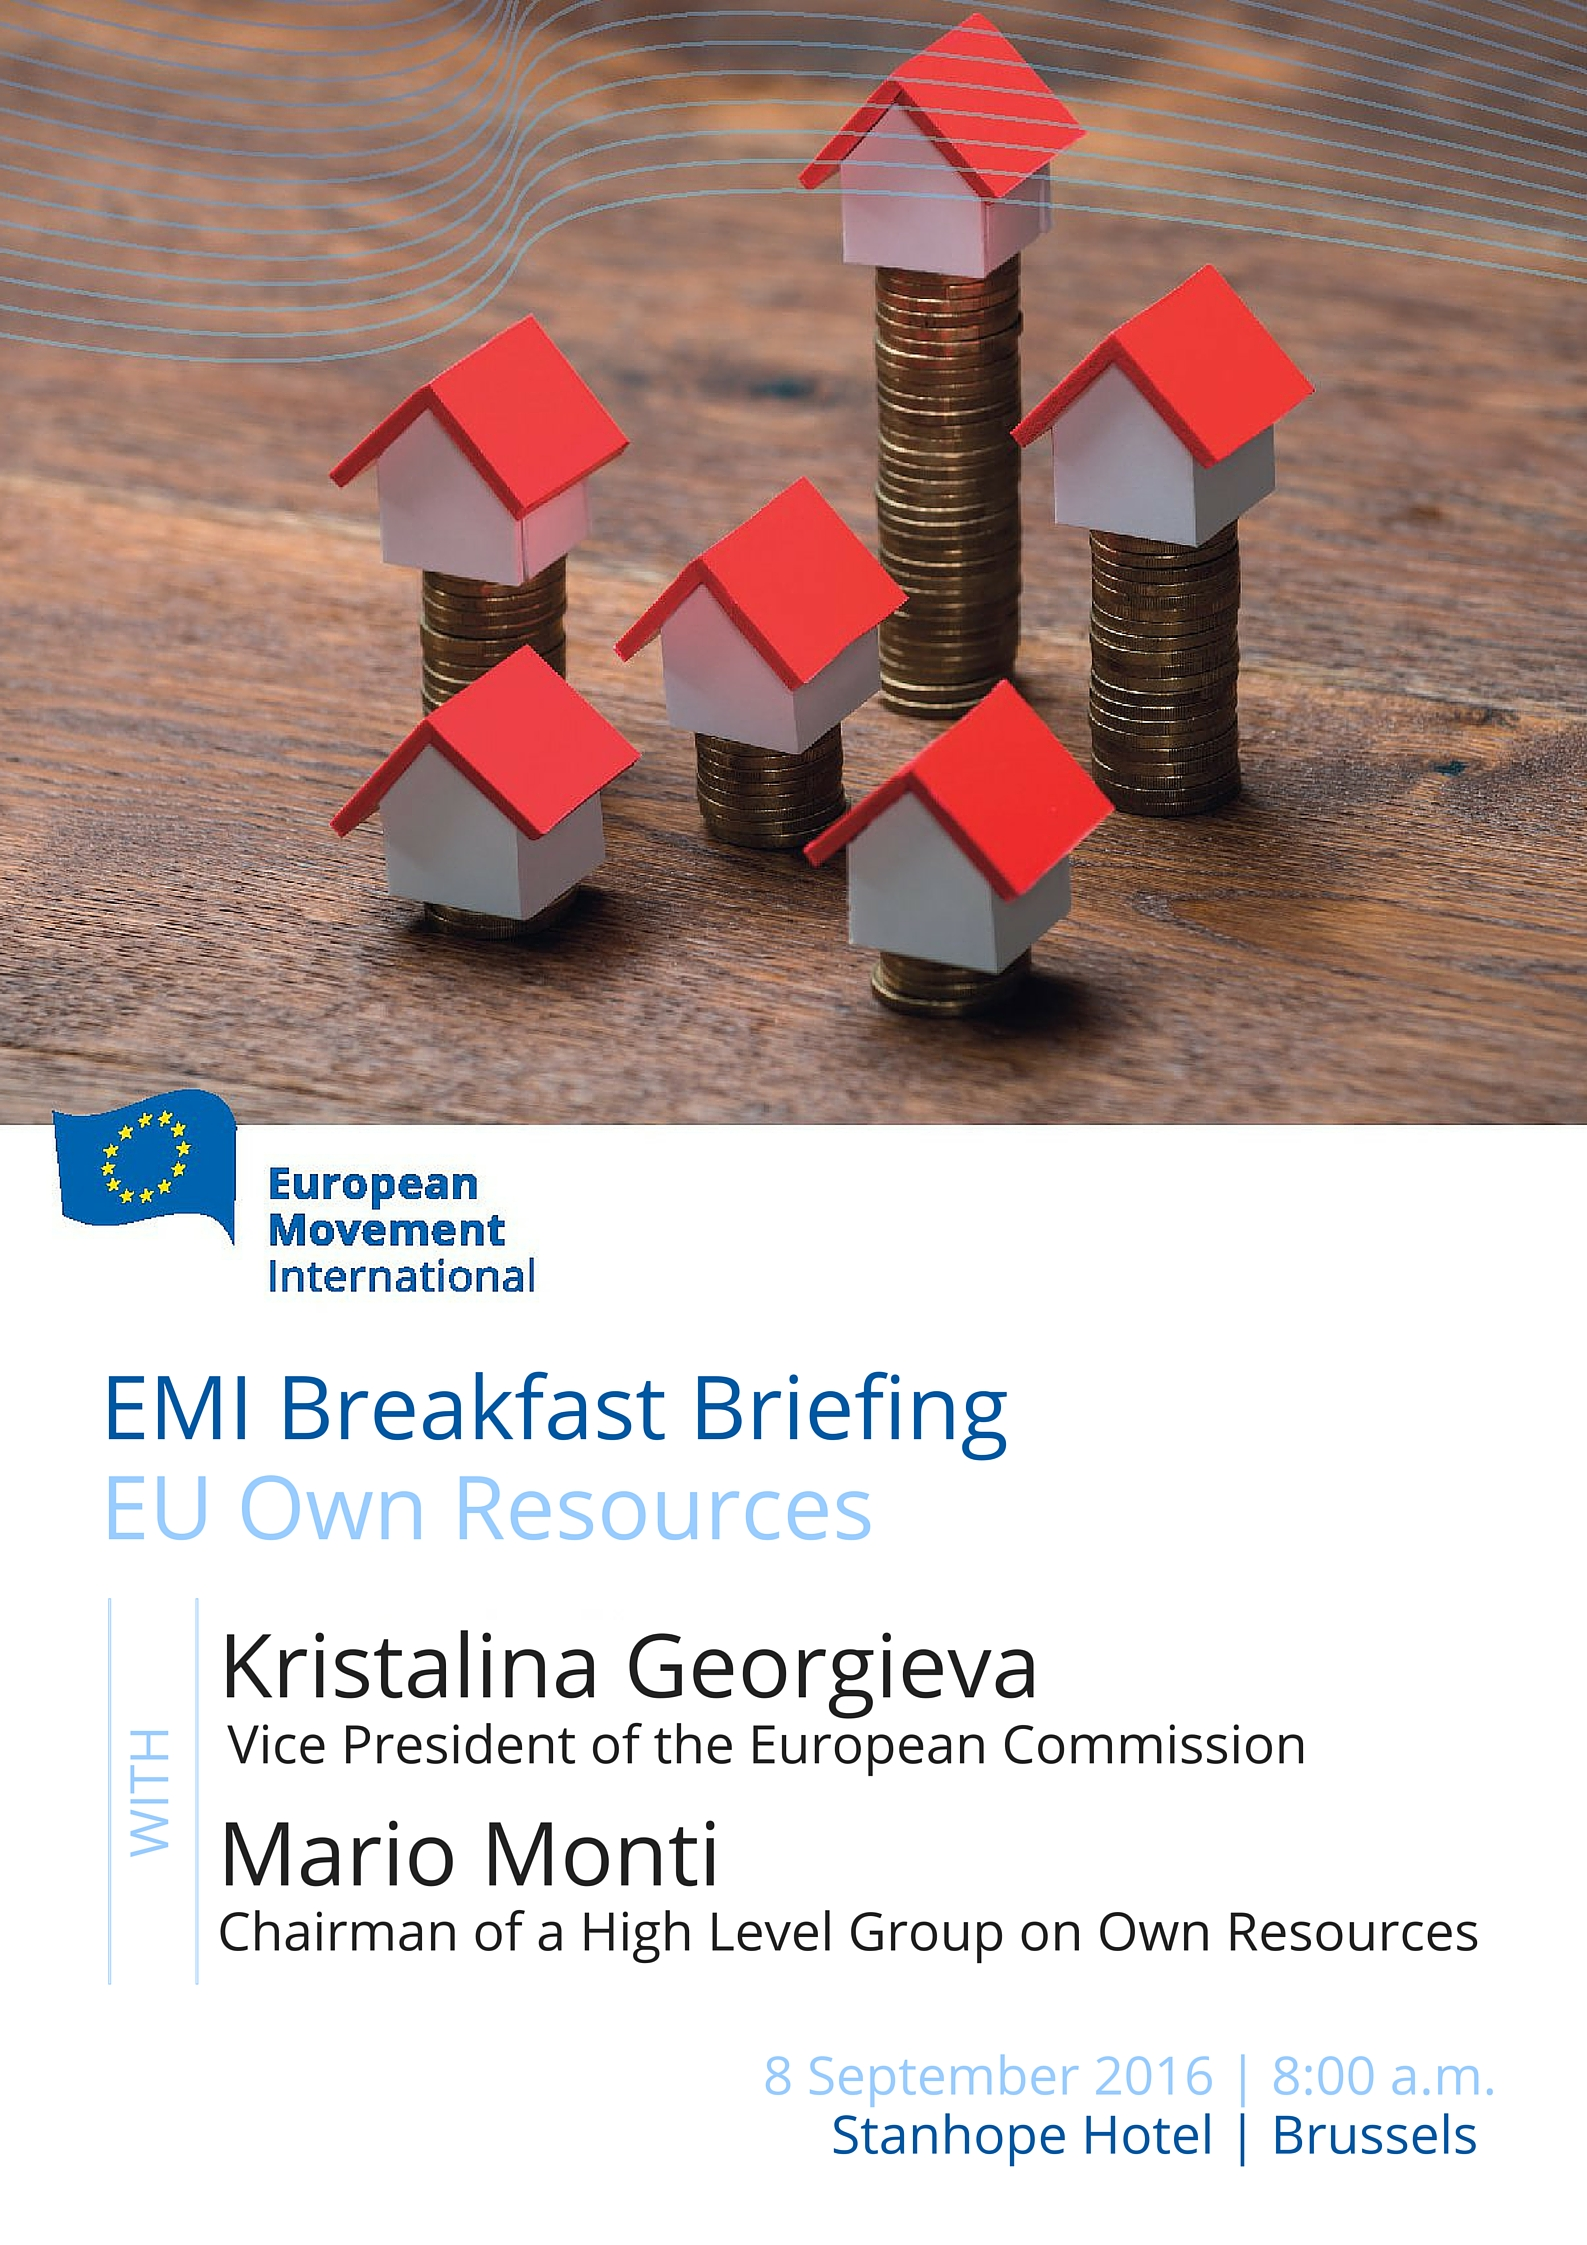 European Movement International Breakfast Briefing with Kristalina Georgieva and Mario Monti